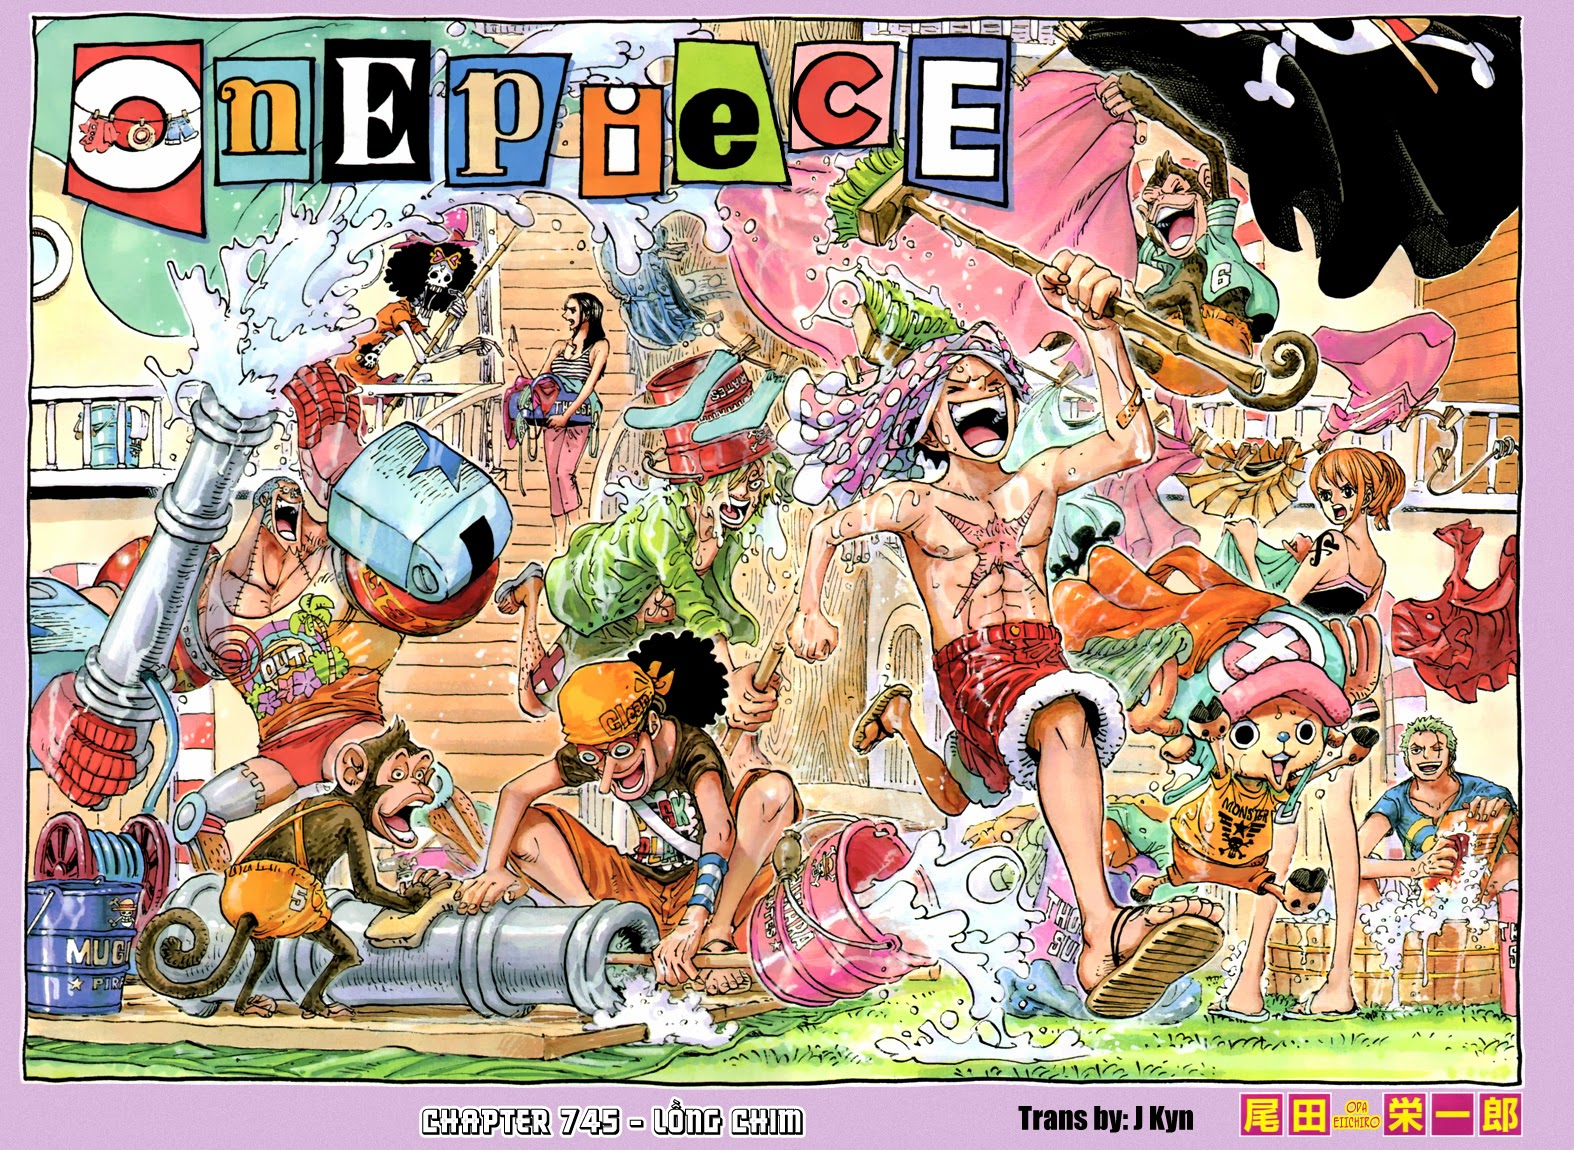 One Piece Chapter 745: Lồng chim 001